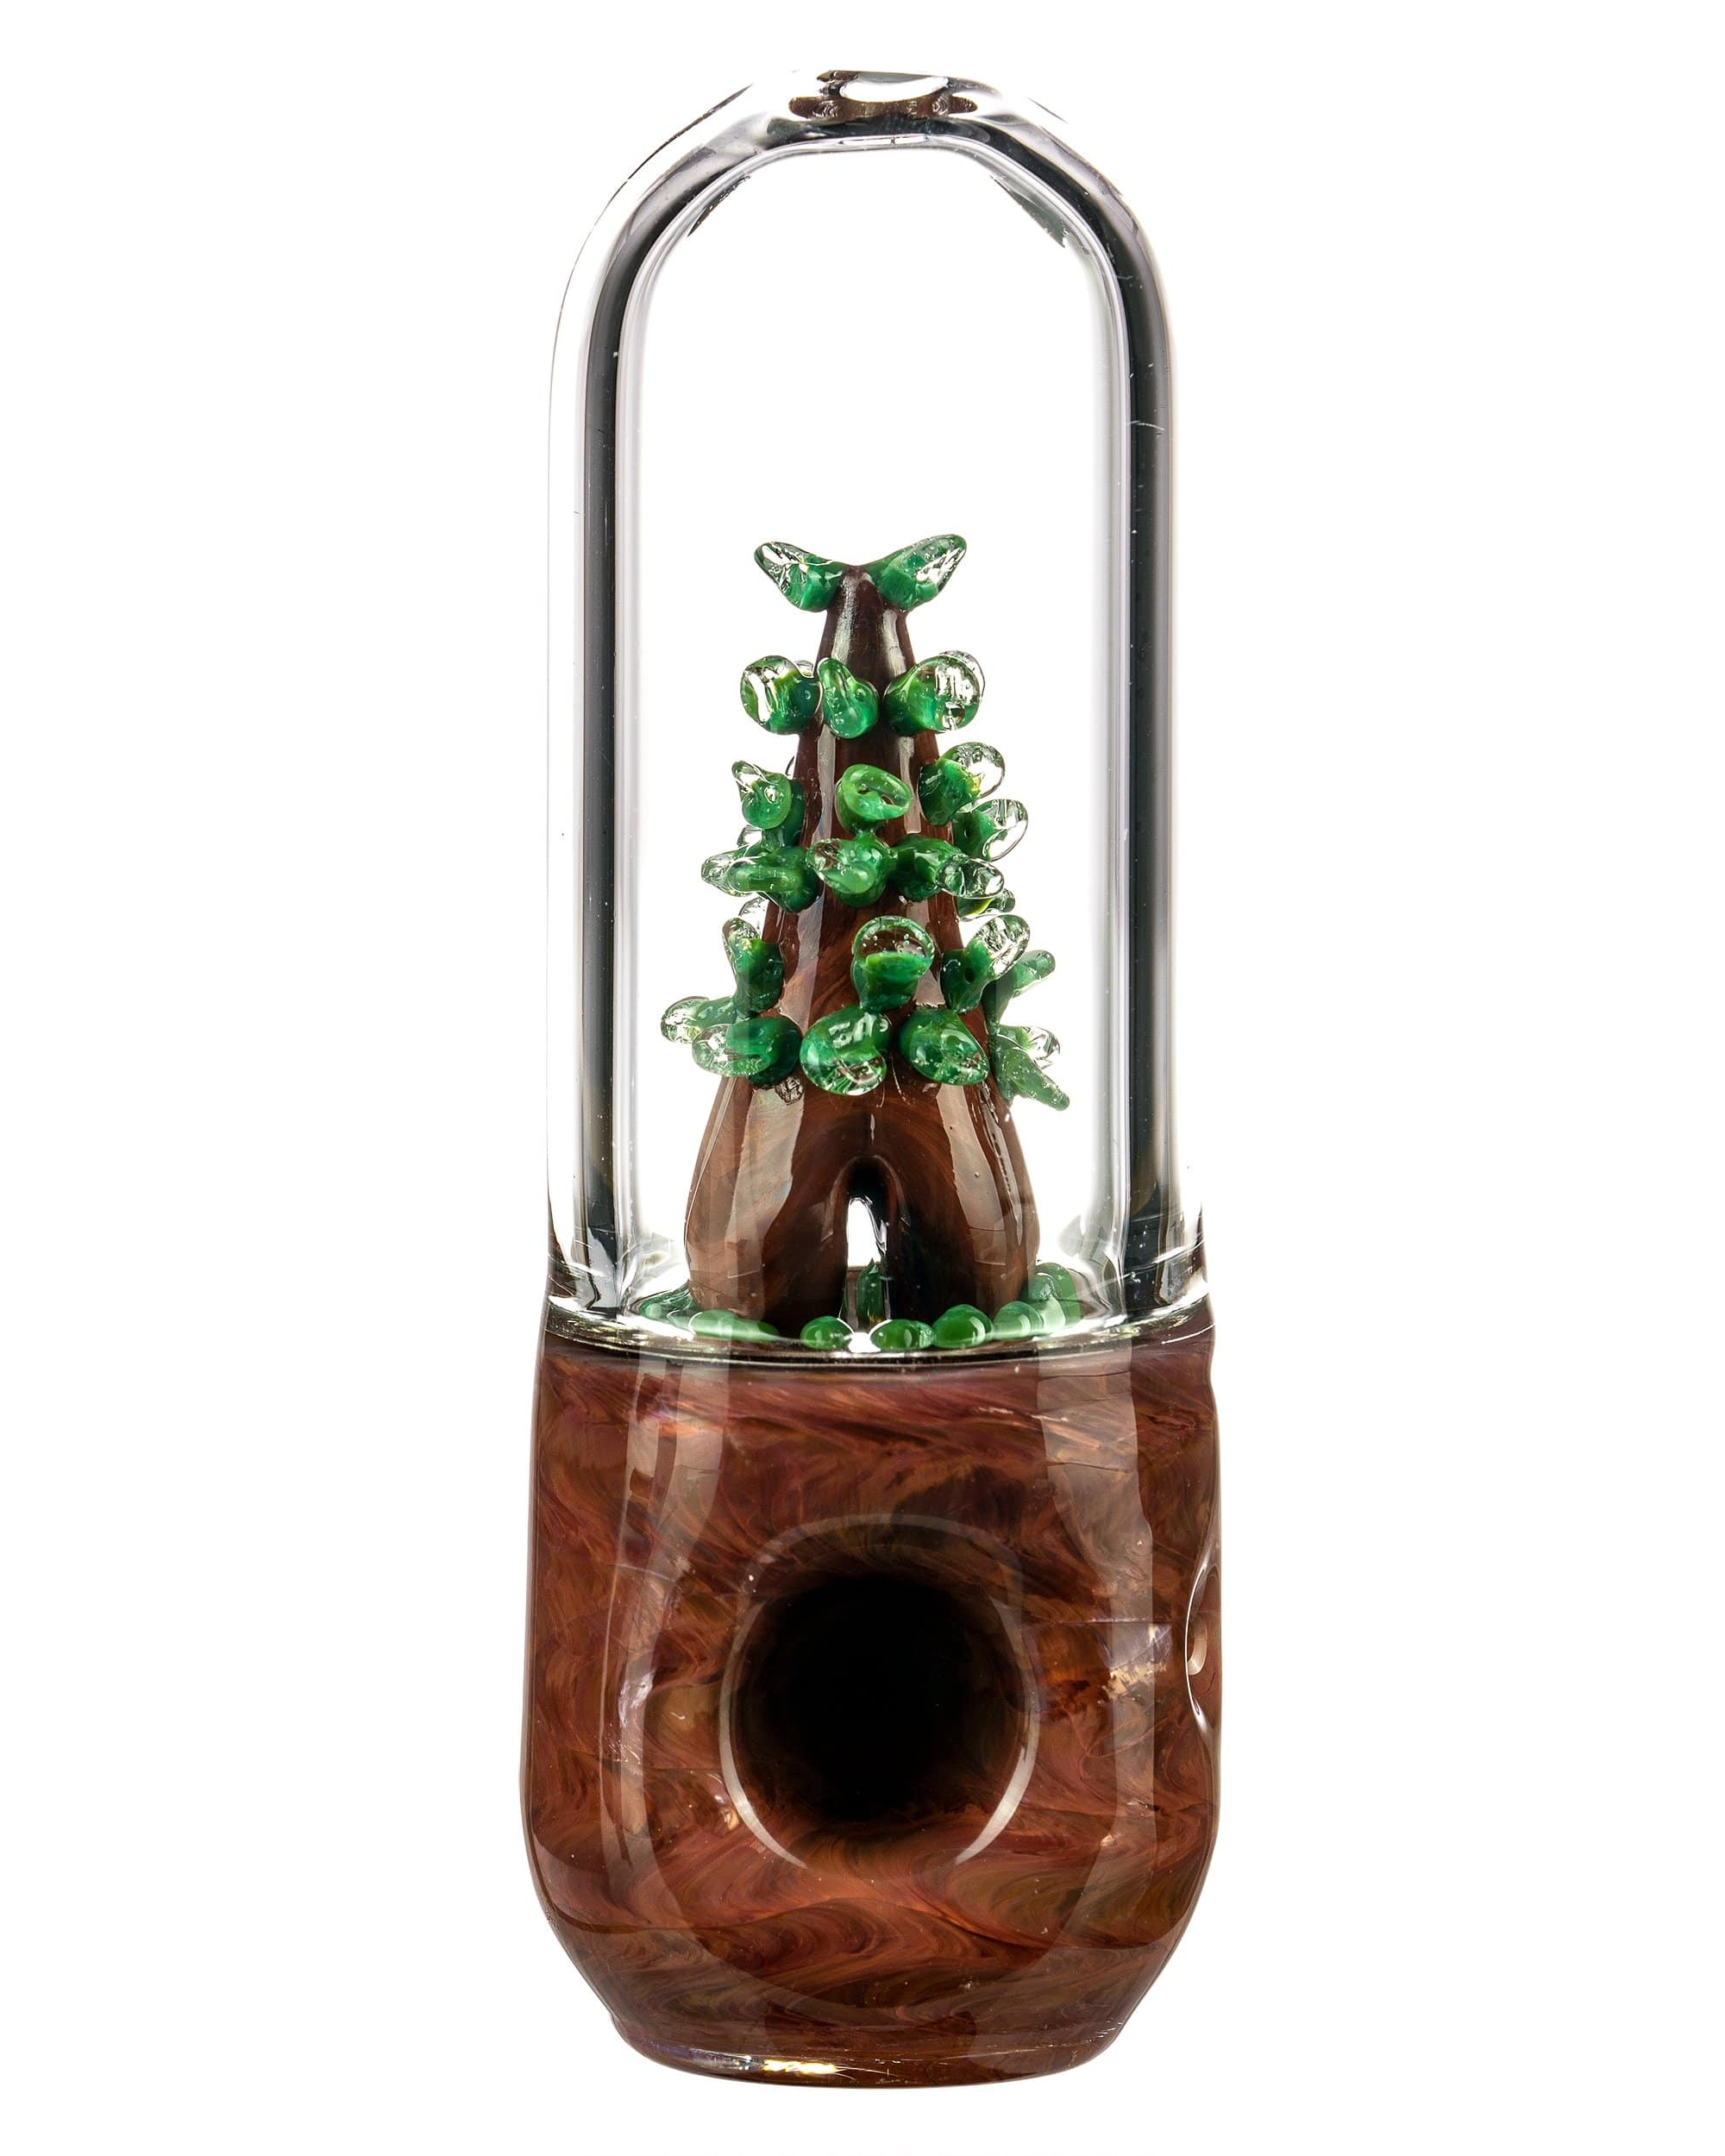 Chandelier Redwood Tree Hand Pipe